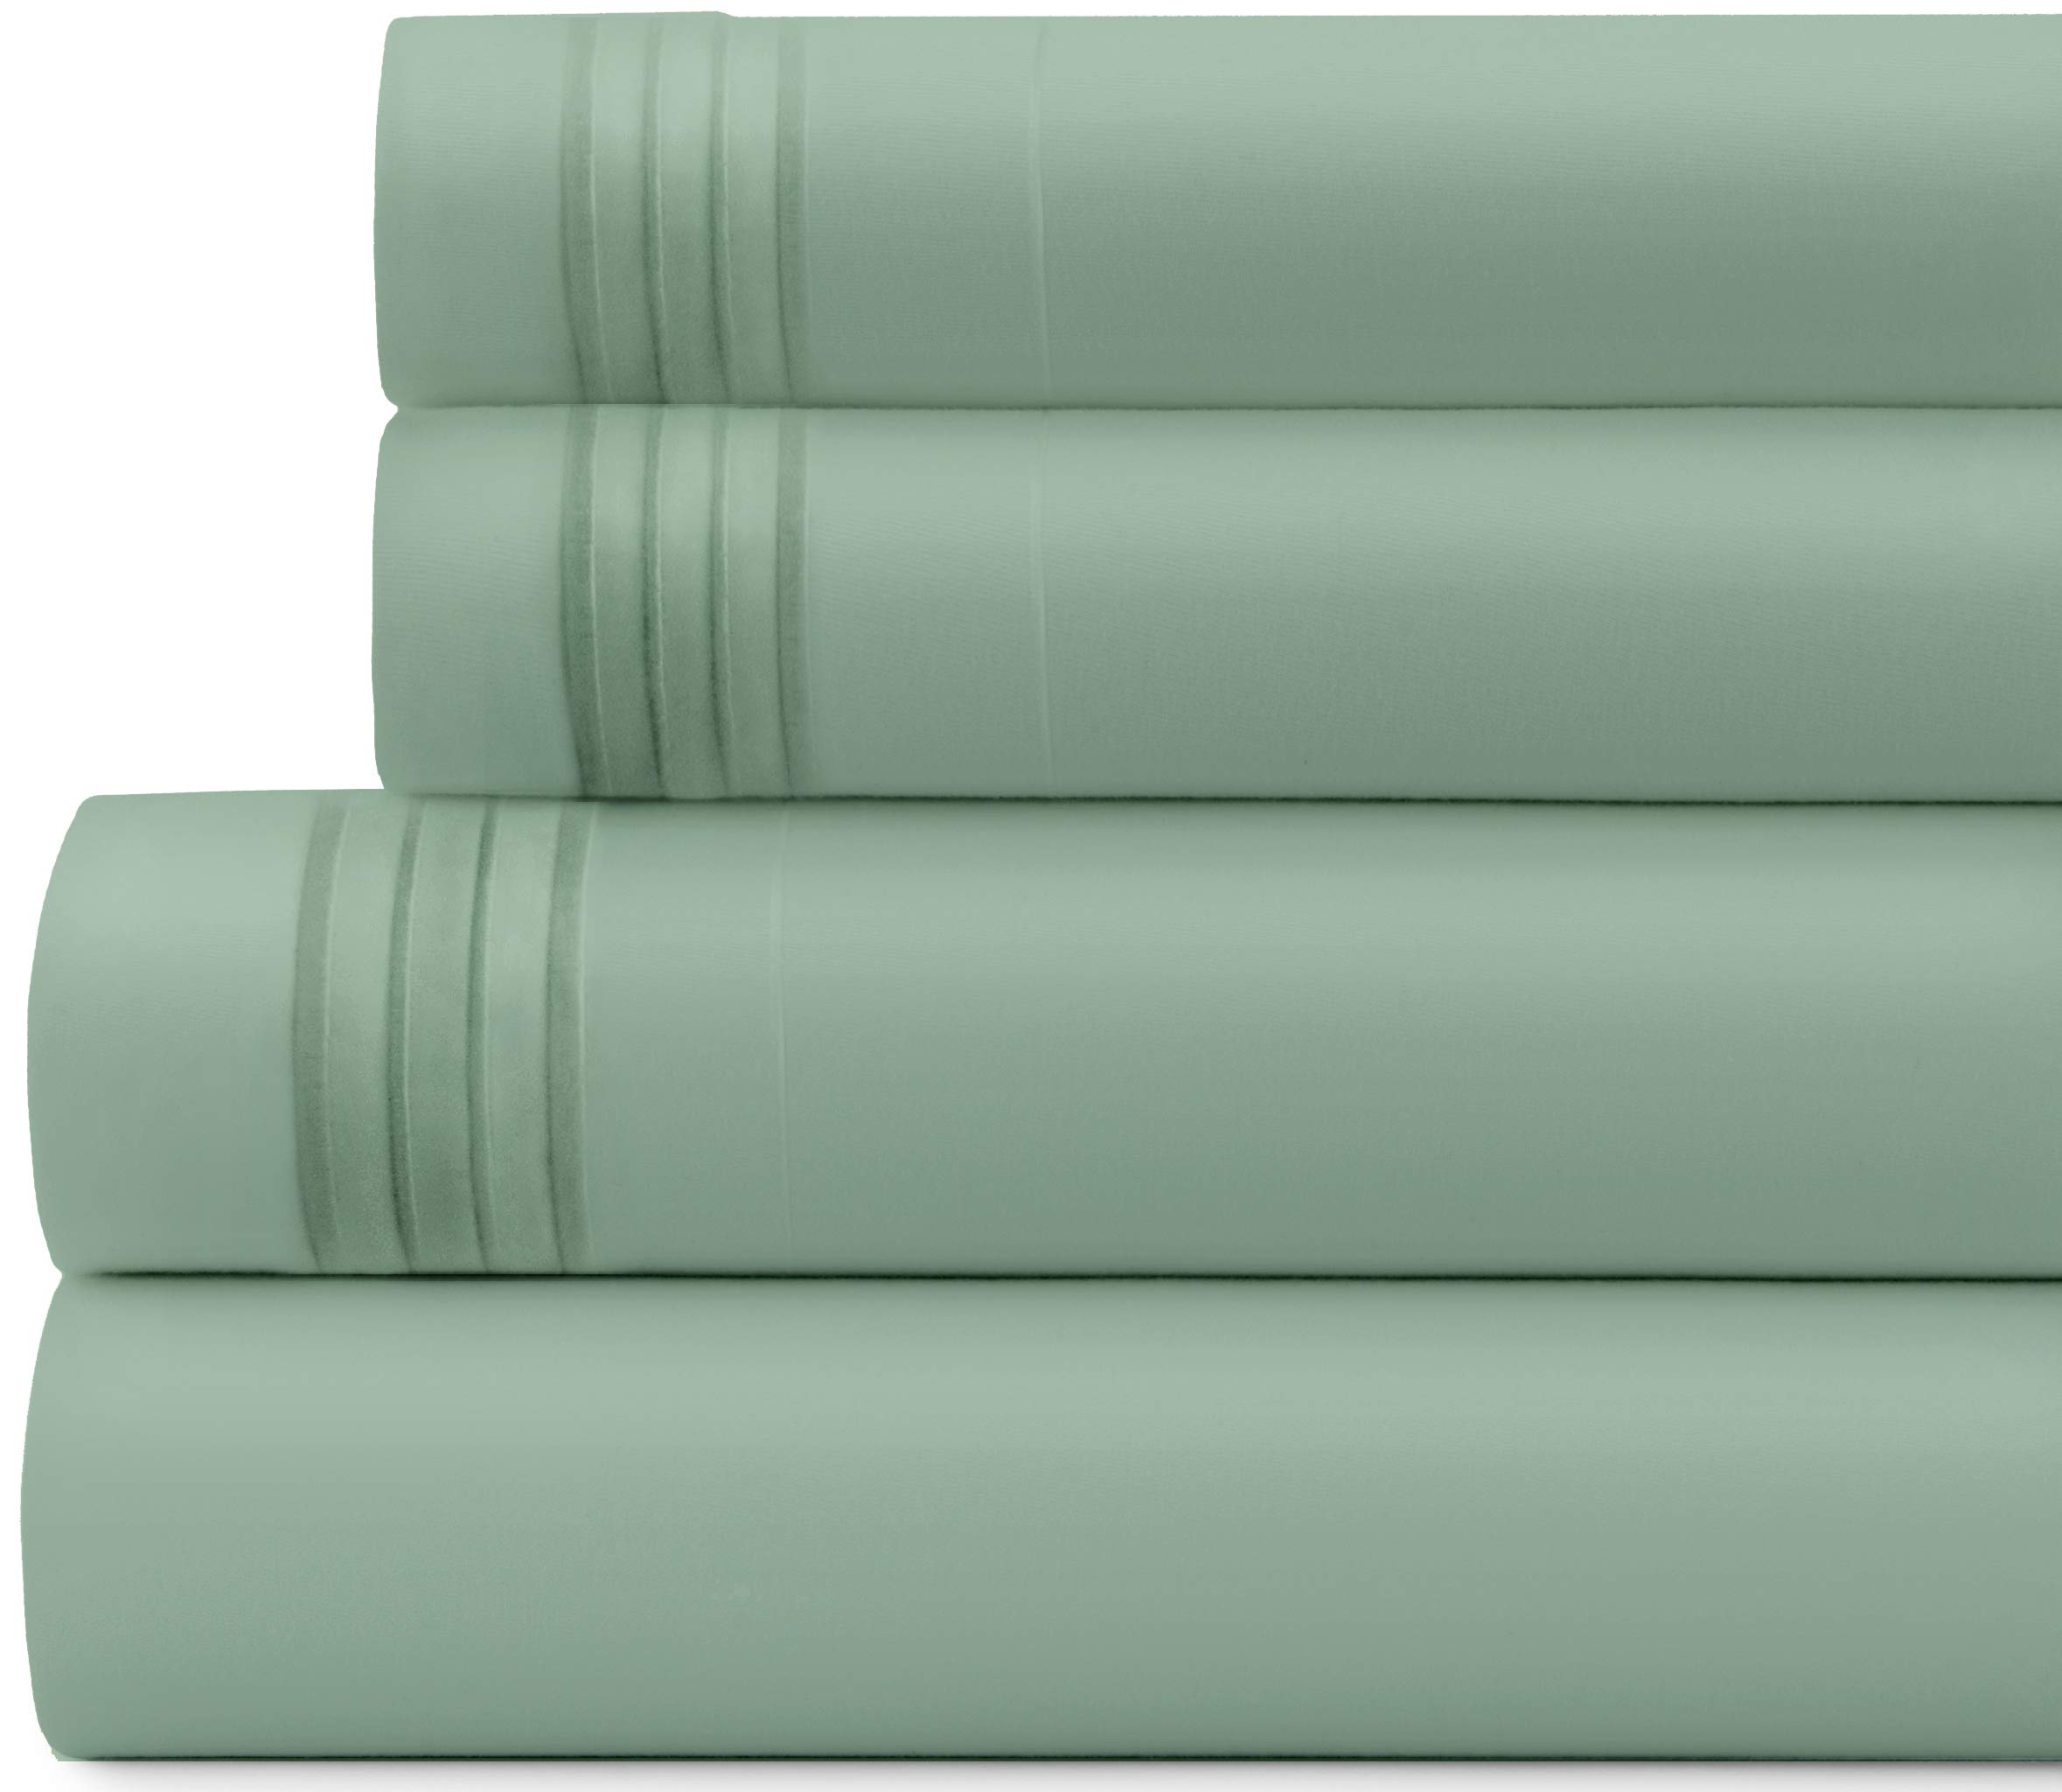 Briarwood Home Bed Sheet Set – Brushed Microfiber 1900 Premium Quality Soft Fabric Breathable Bedding – Deep Pocket – Wrinkle, Fade & Shrinkage Resistant 3 Piece Sheets (Twin-XL/Sage)